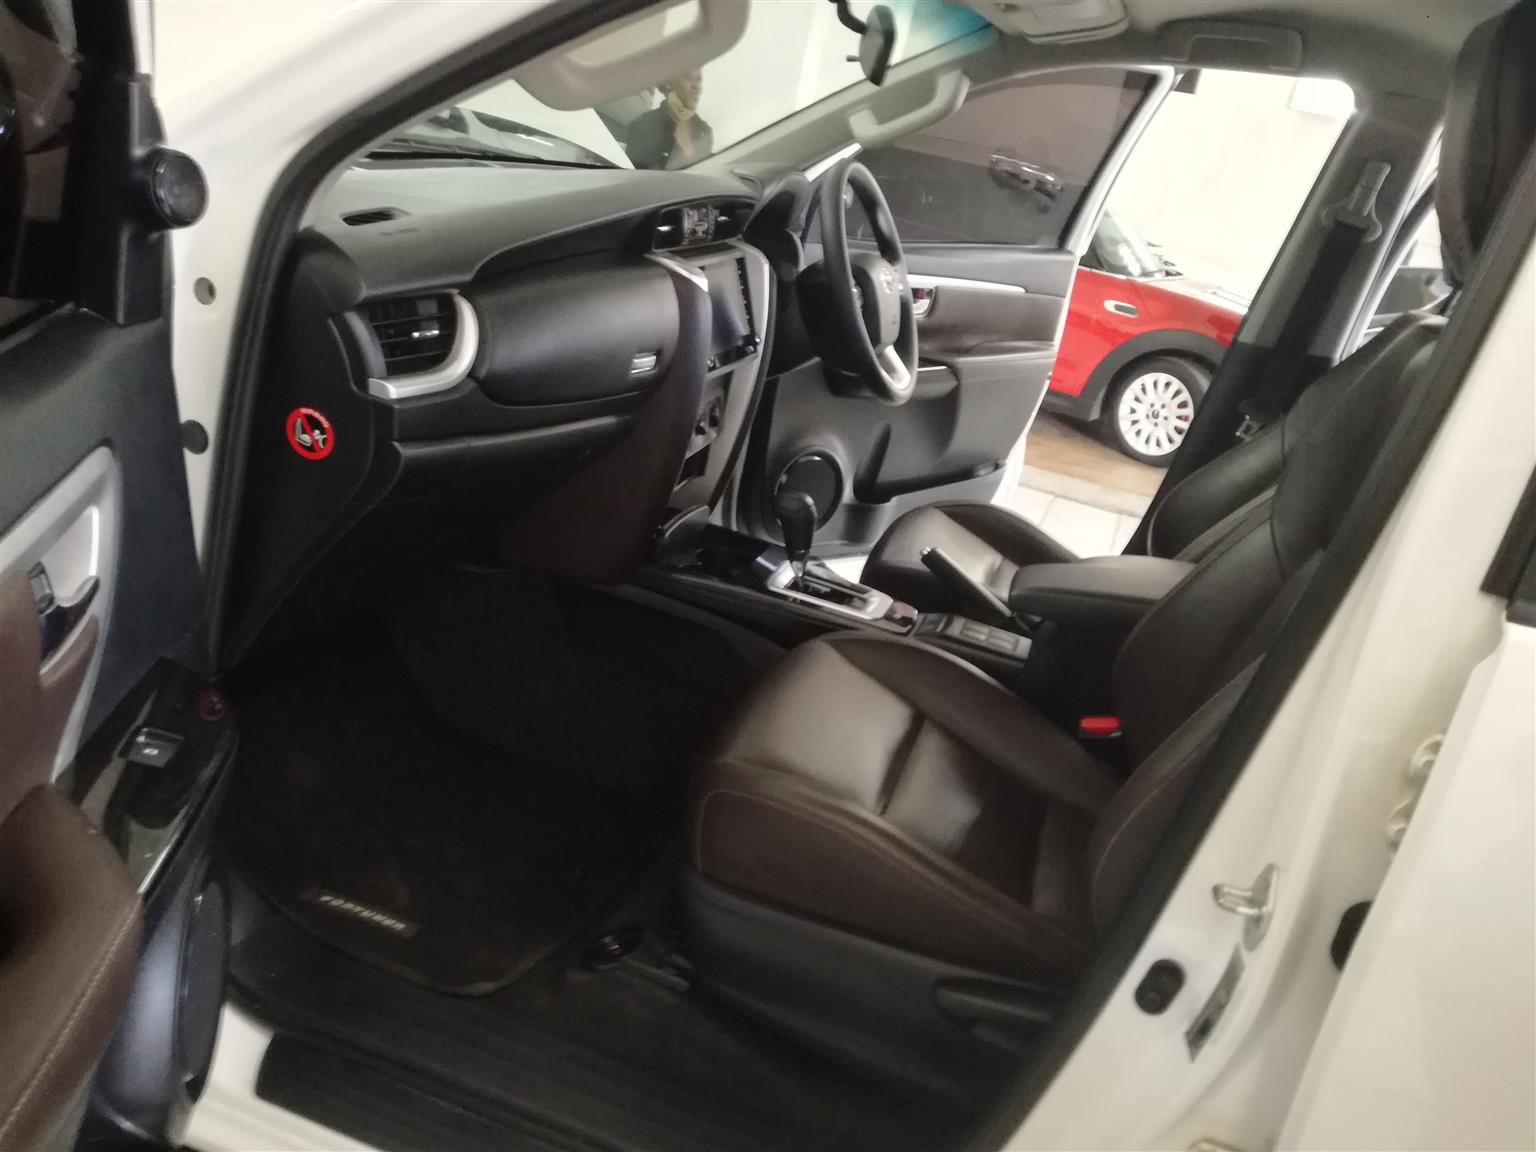 2020 Toyota Fortuner 2.4 GD6 4x2 Automatic, Mechanically perfect